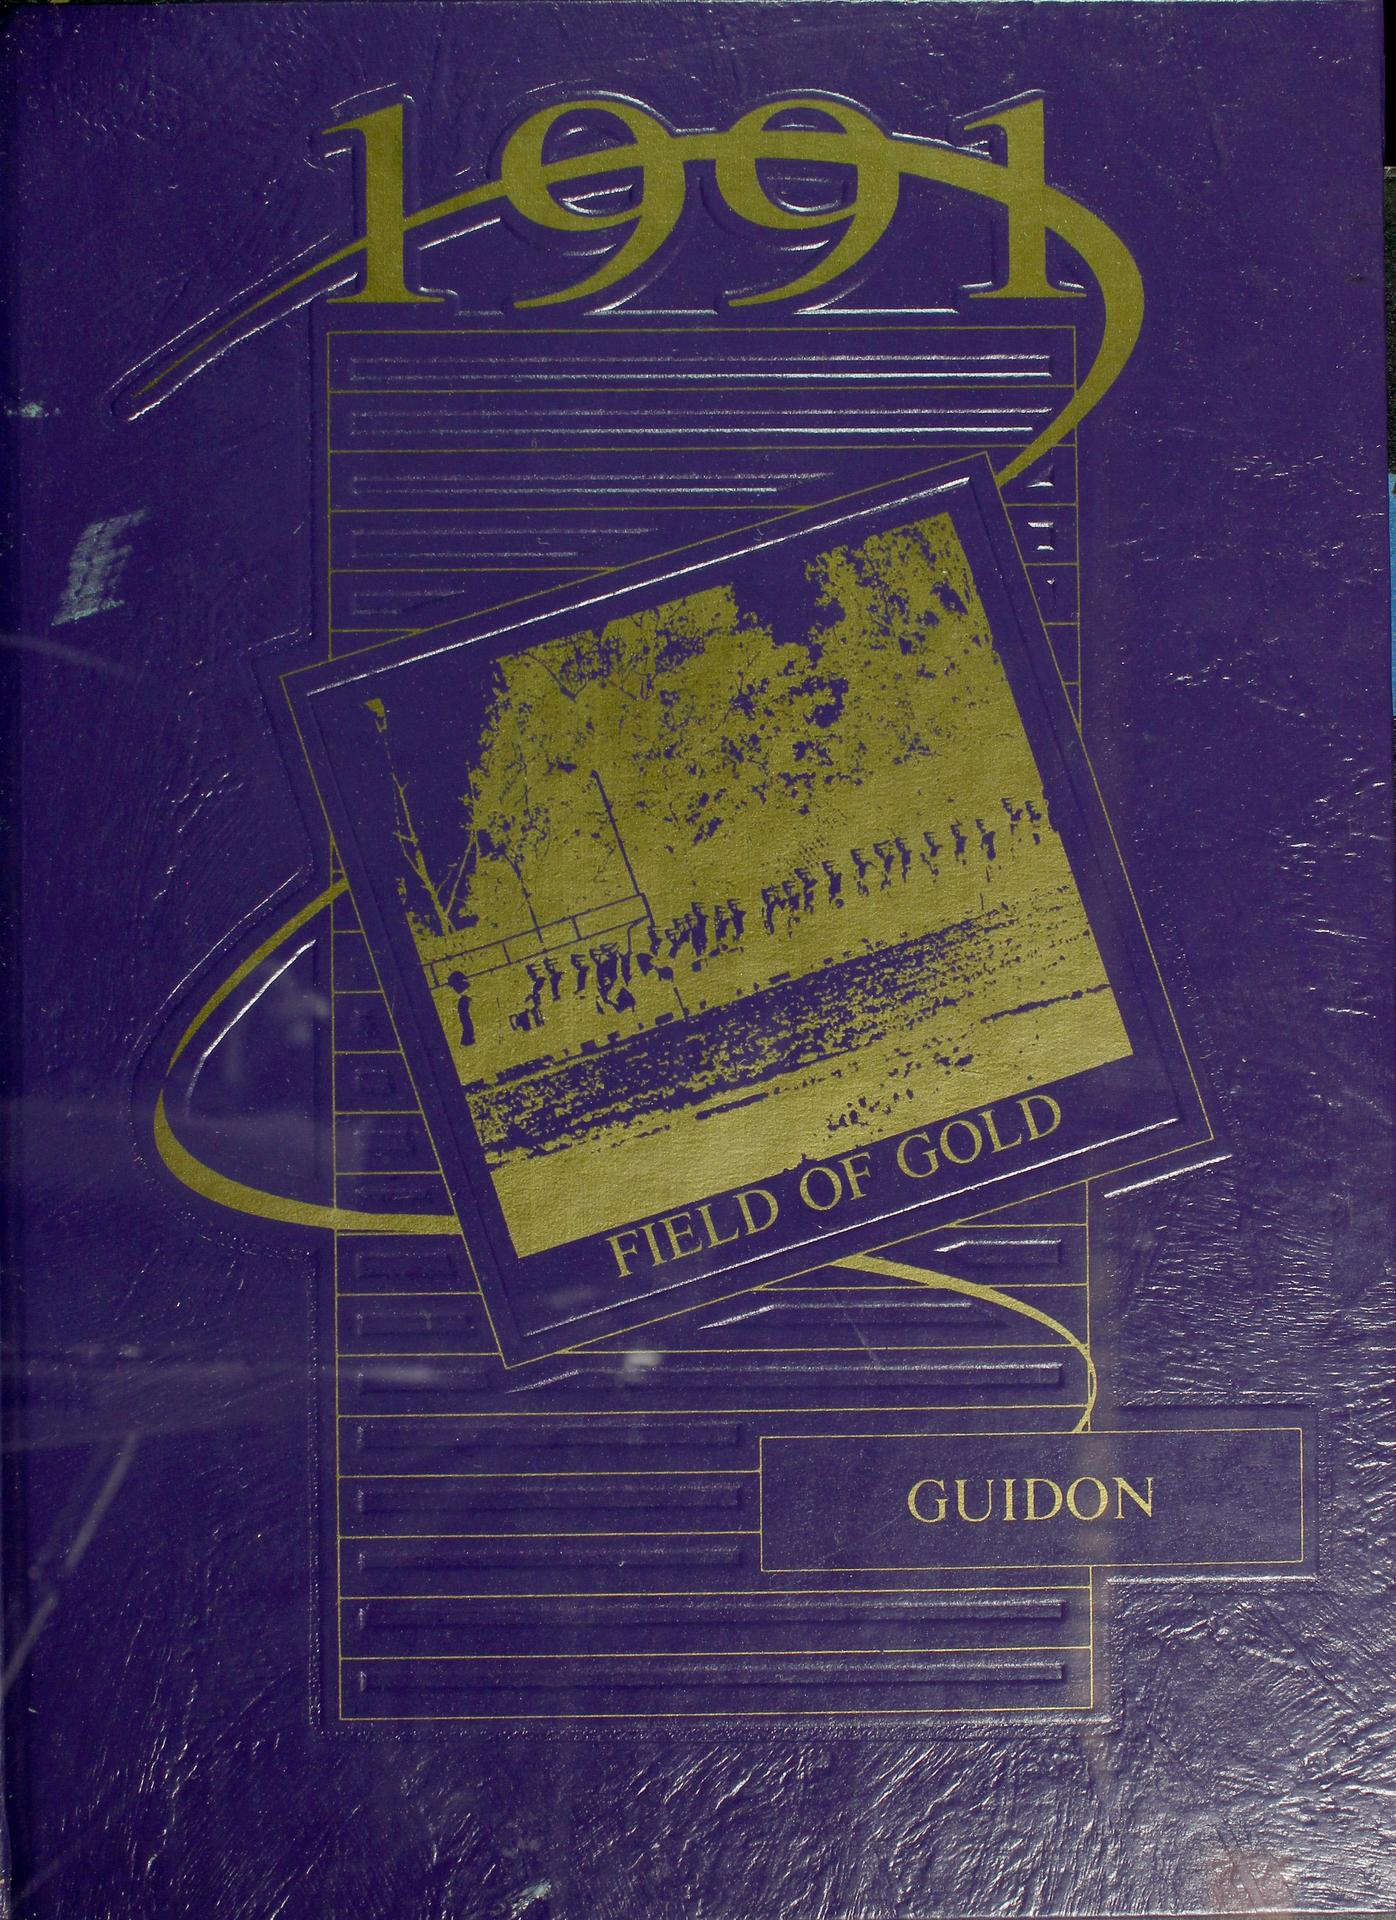 1991 CBC Yearbook